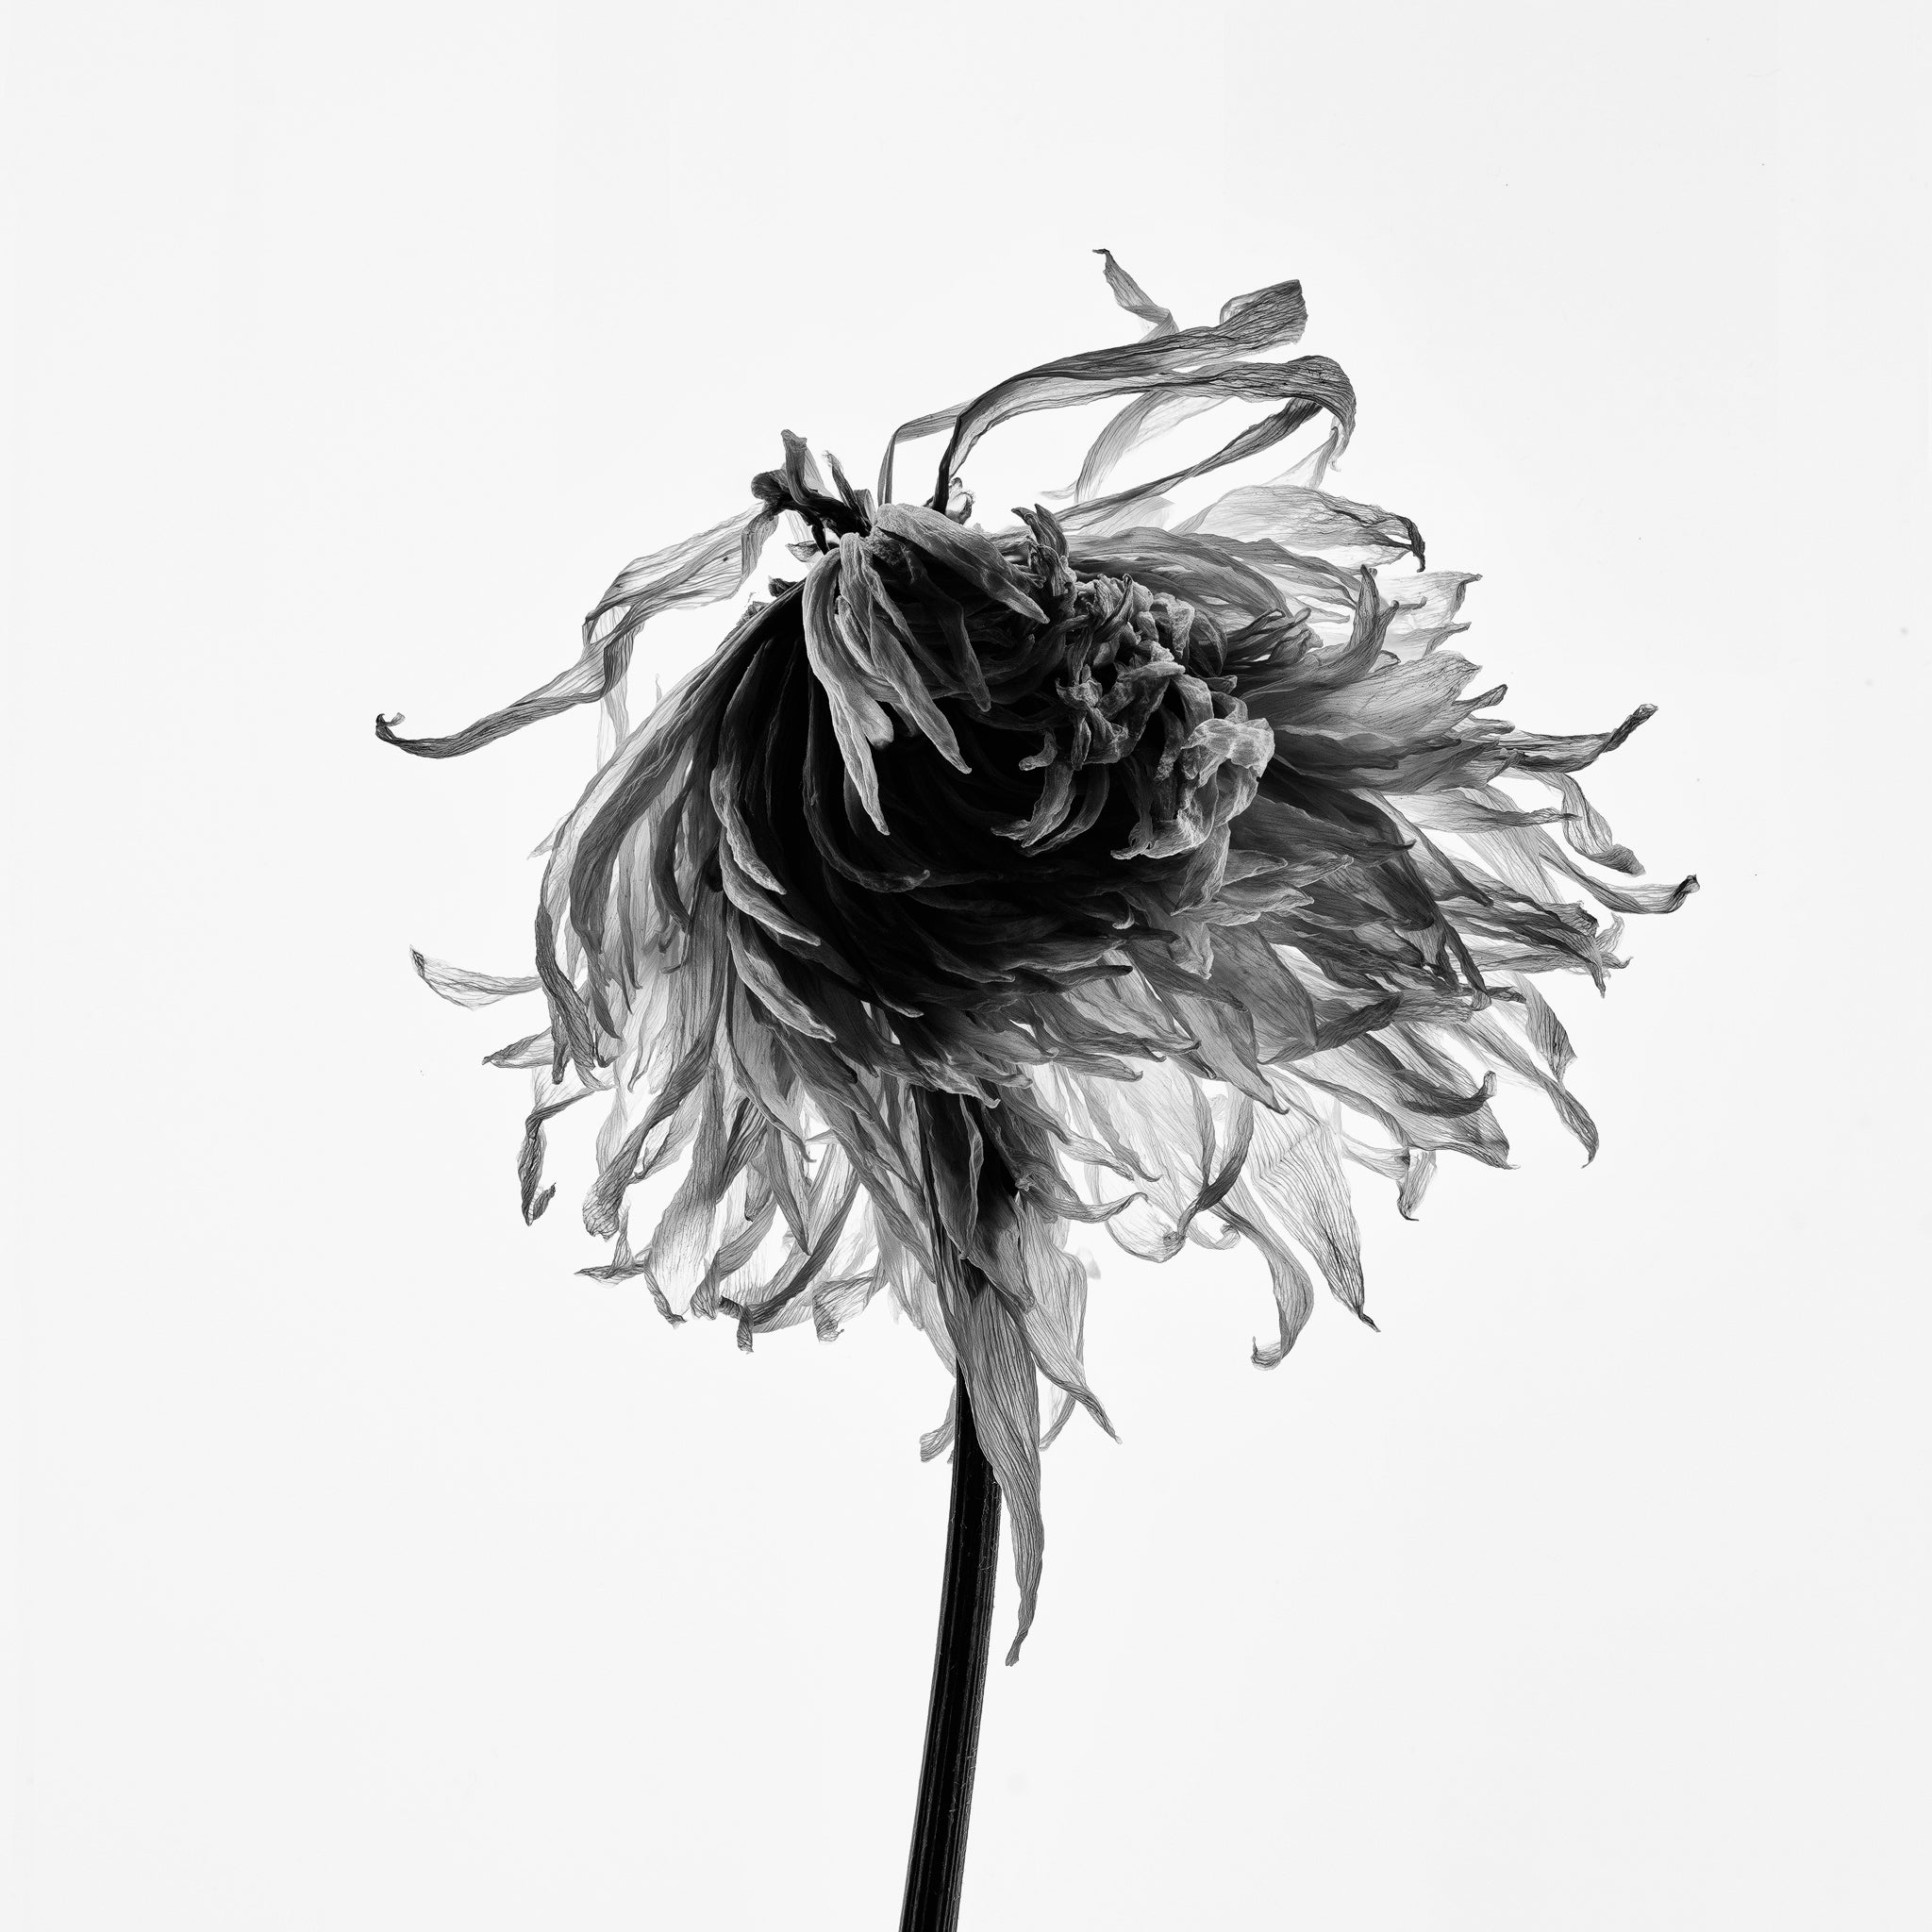 Flower Head on a Backlight, black and white photograph by Keith Dotson. Buy a fine art print.